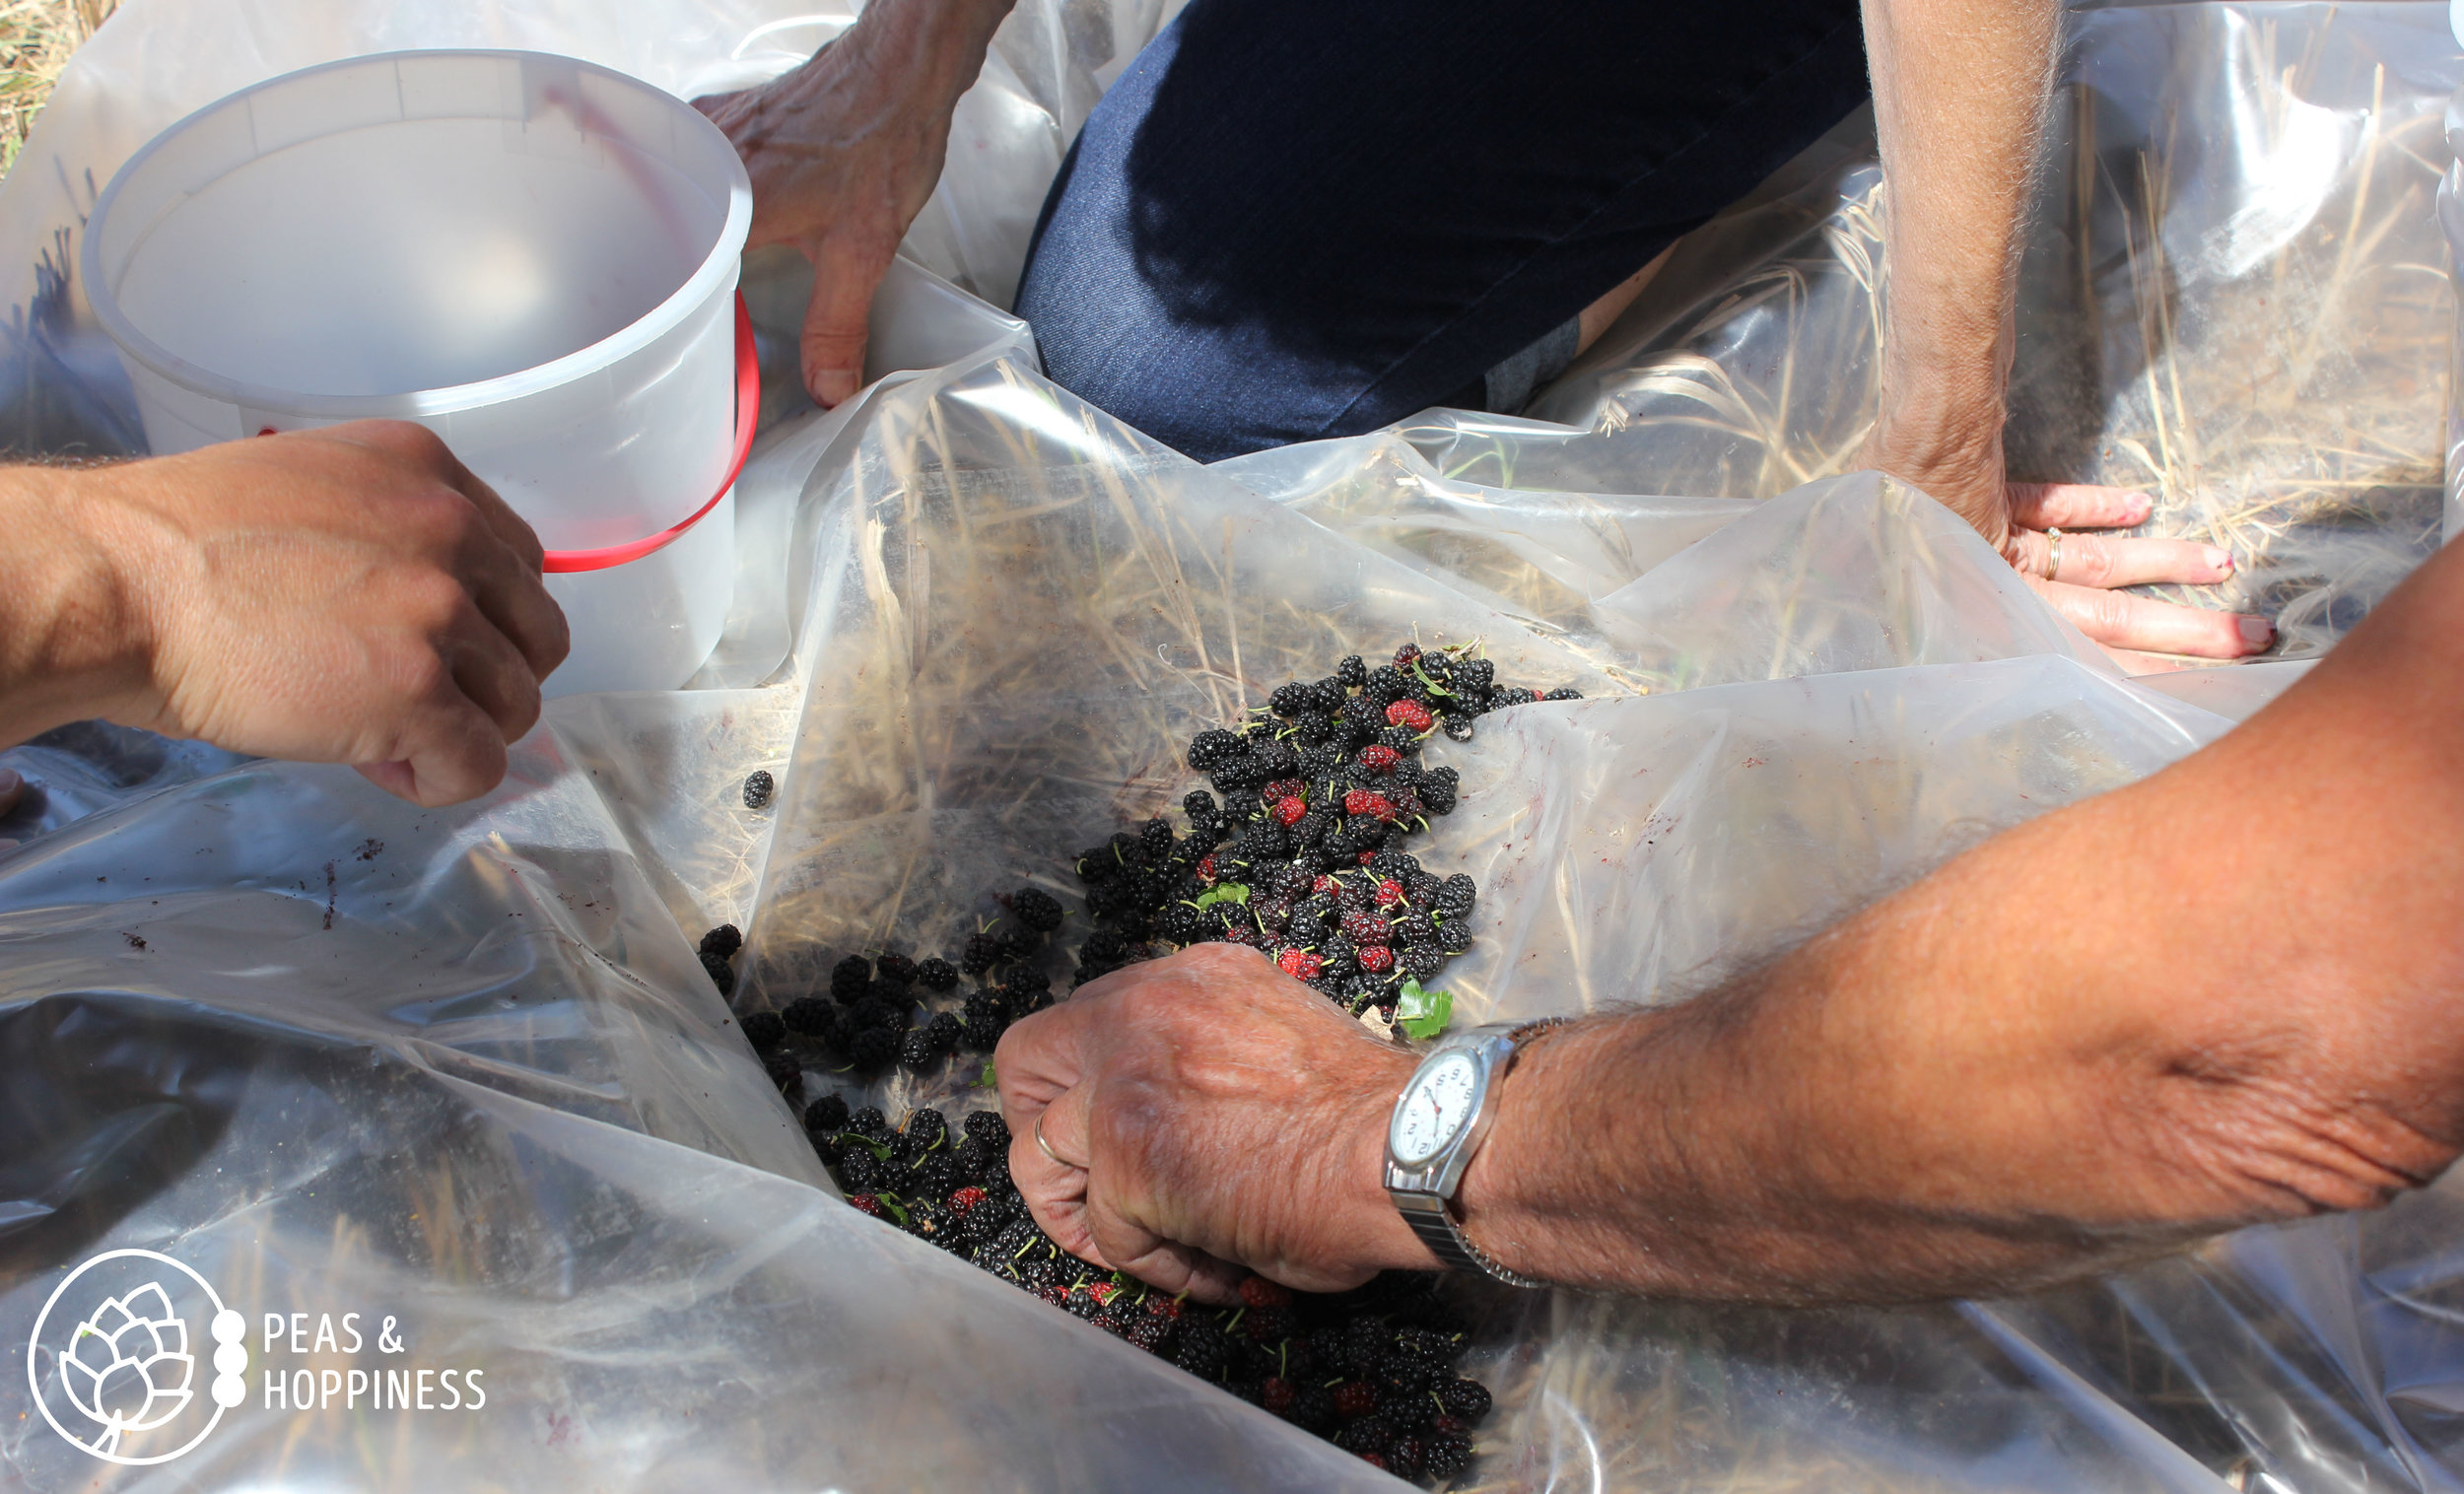 Sorting the berries from the critters